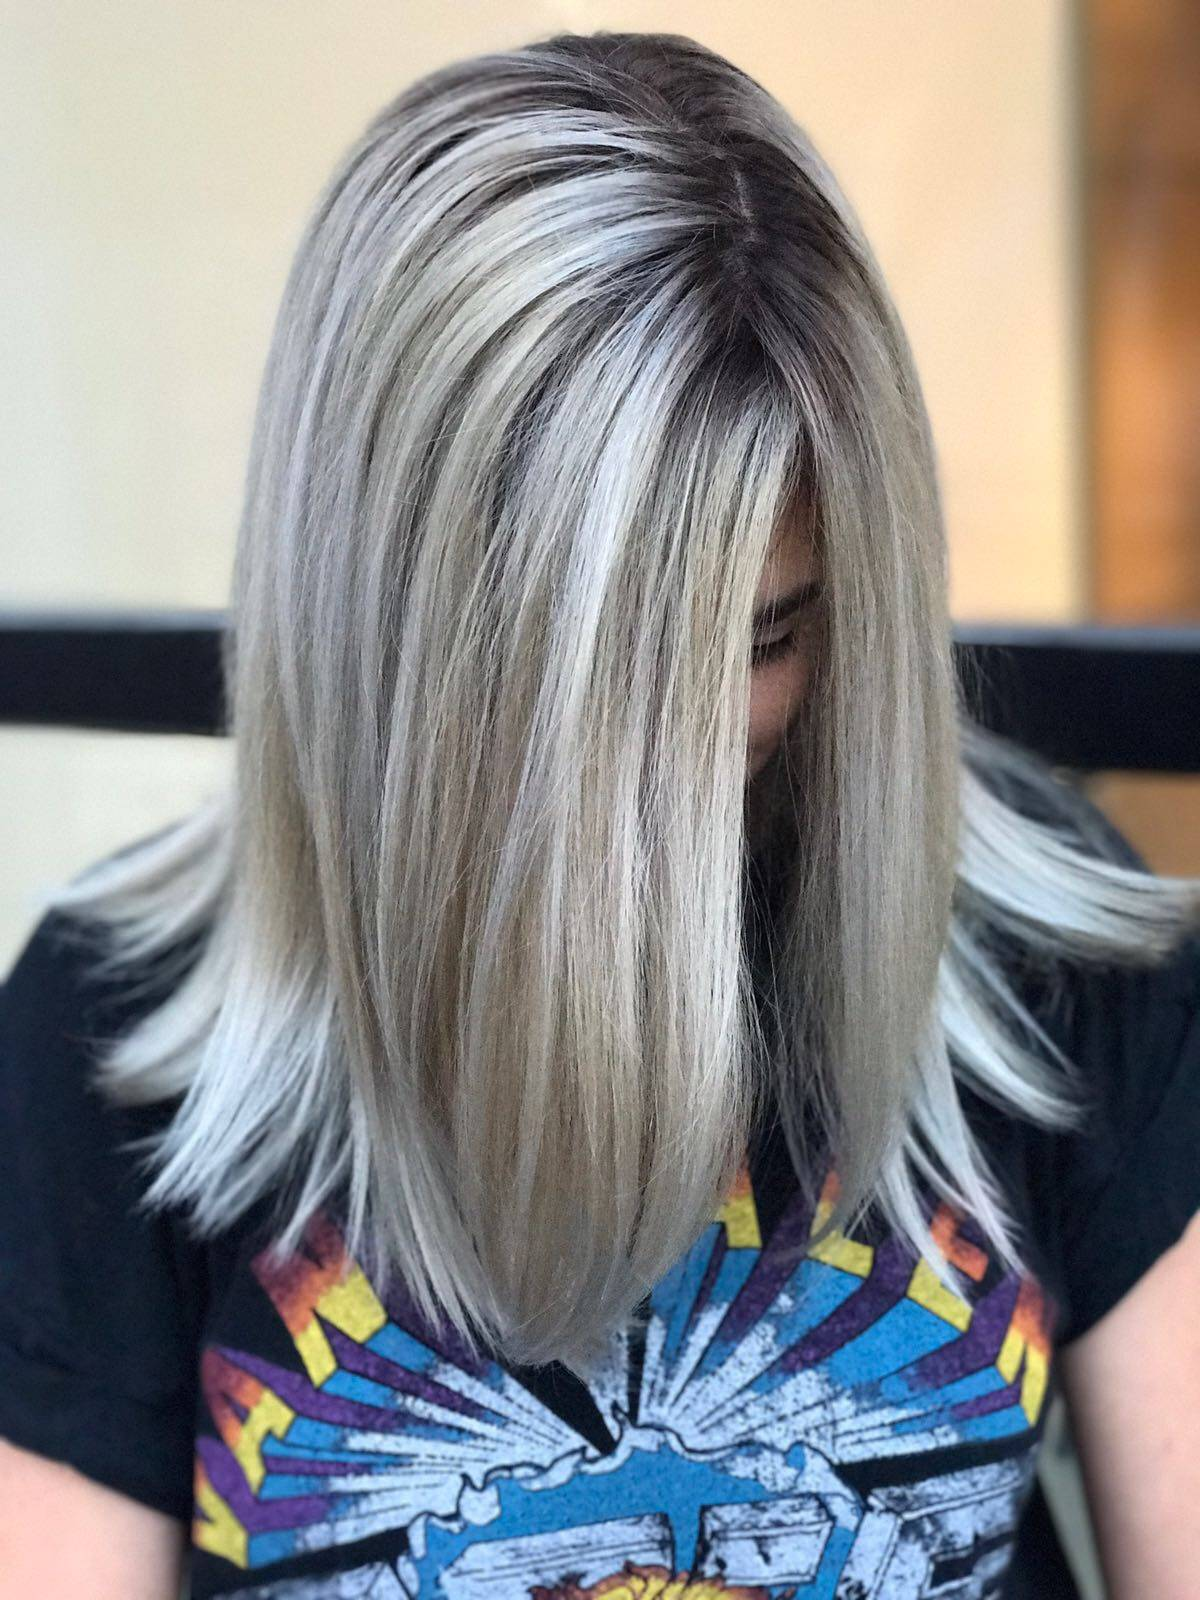 Miami Hair Salon Coral Gables Hair Extensions Salon Miami Spa Nails